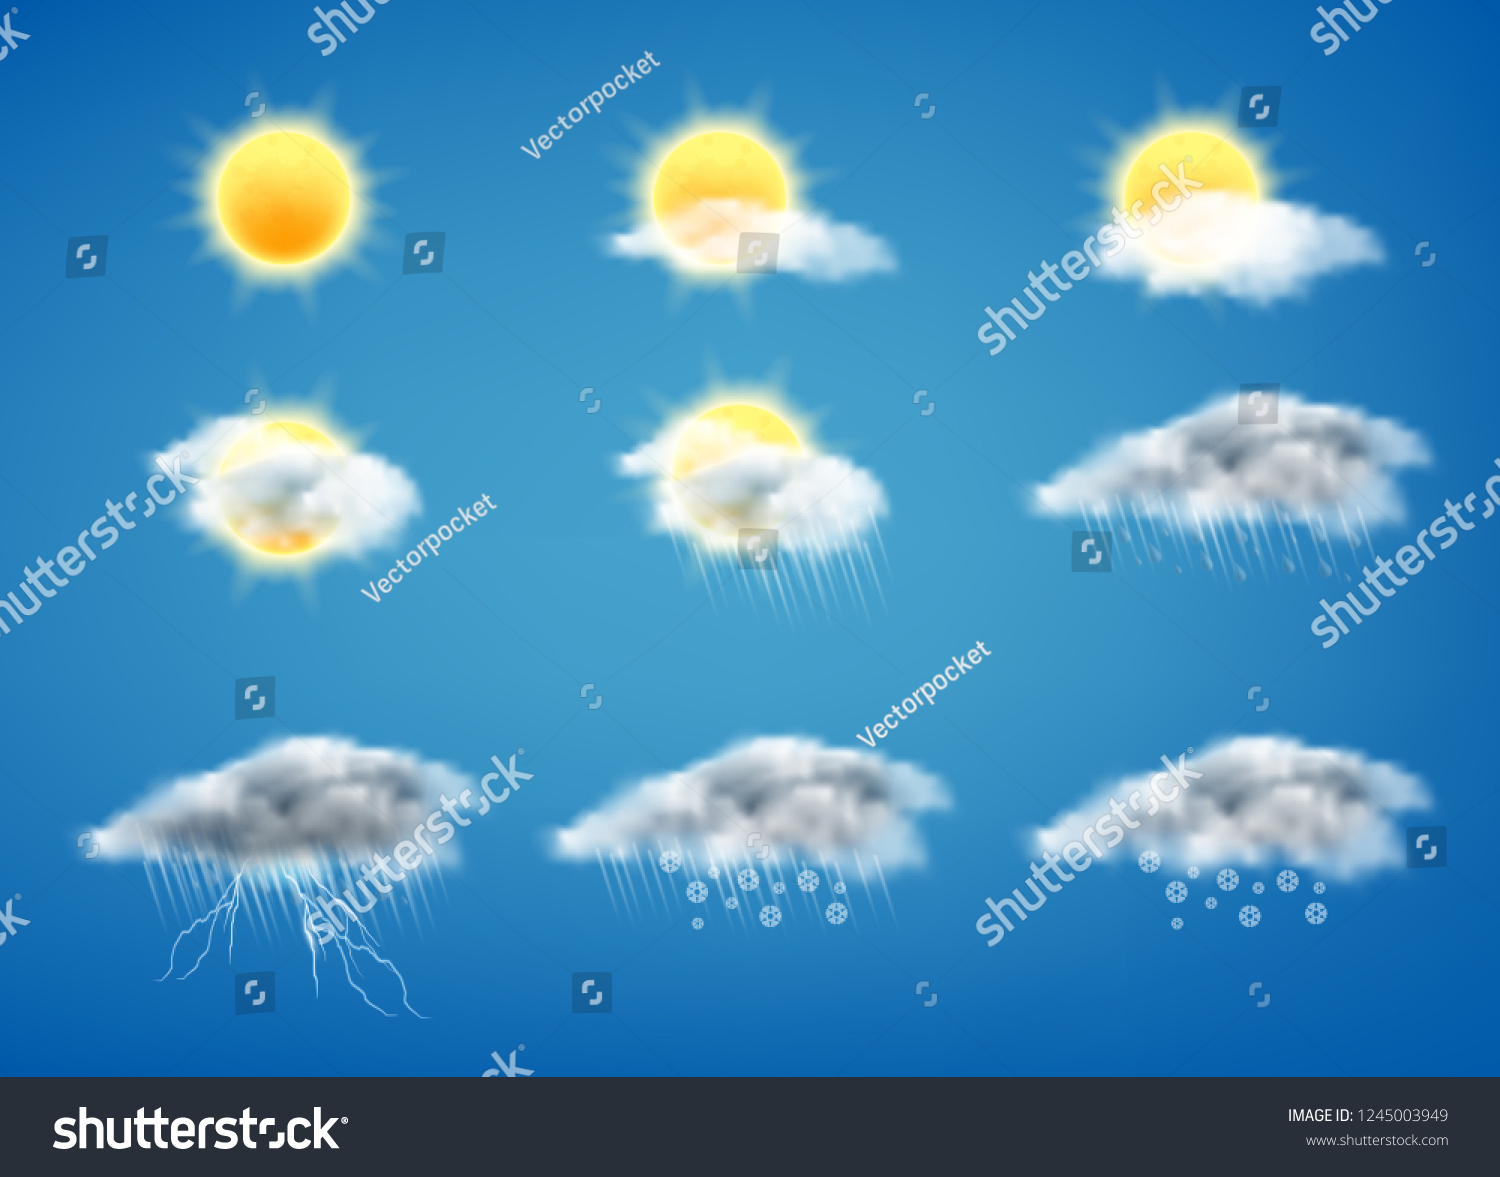 hight resolution of vector realistic set of weather forecast icons for web interfaces or mobile apps isolated on